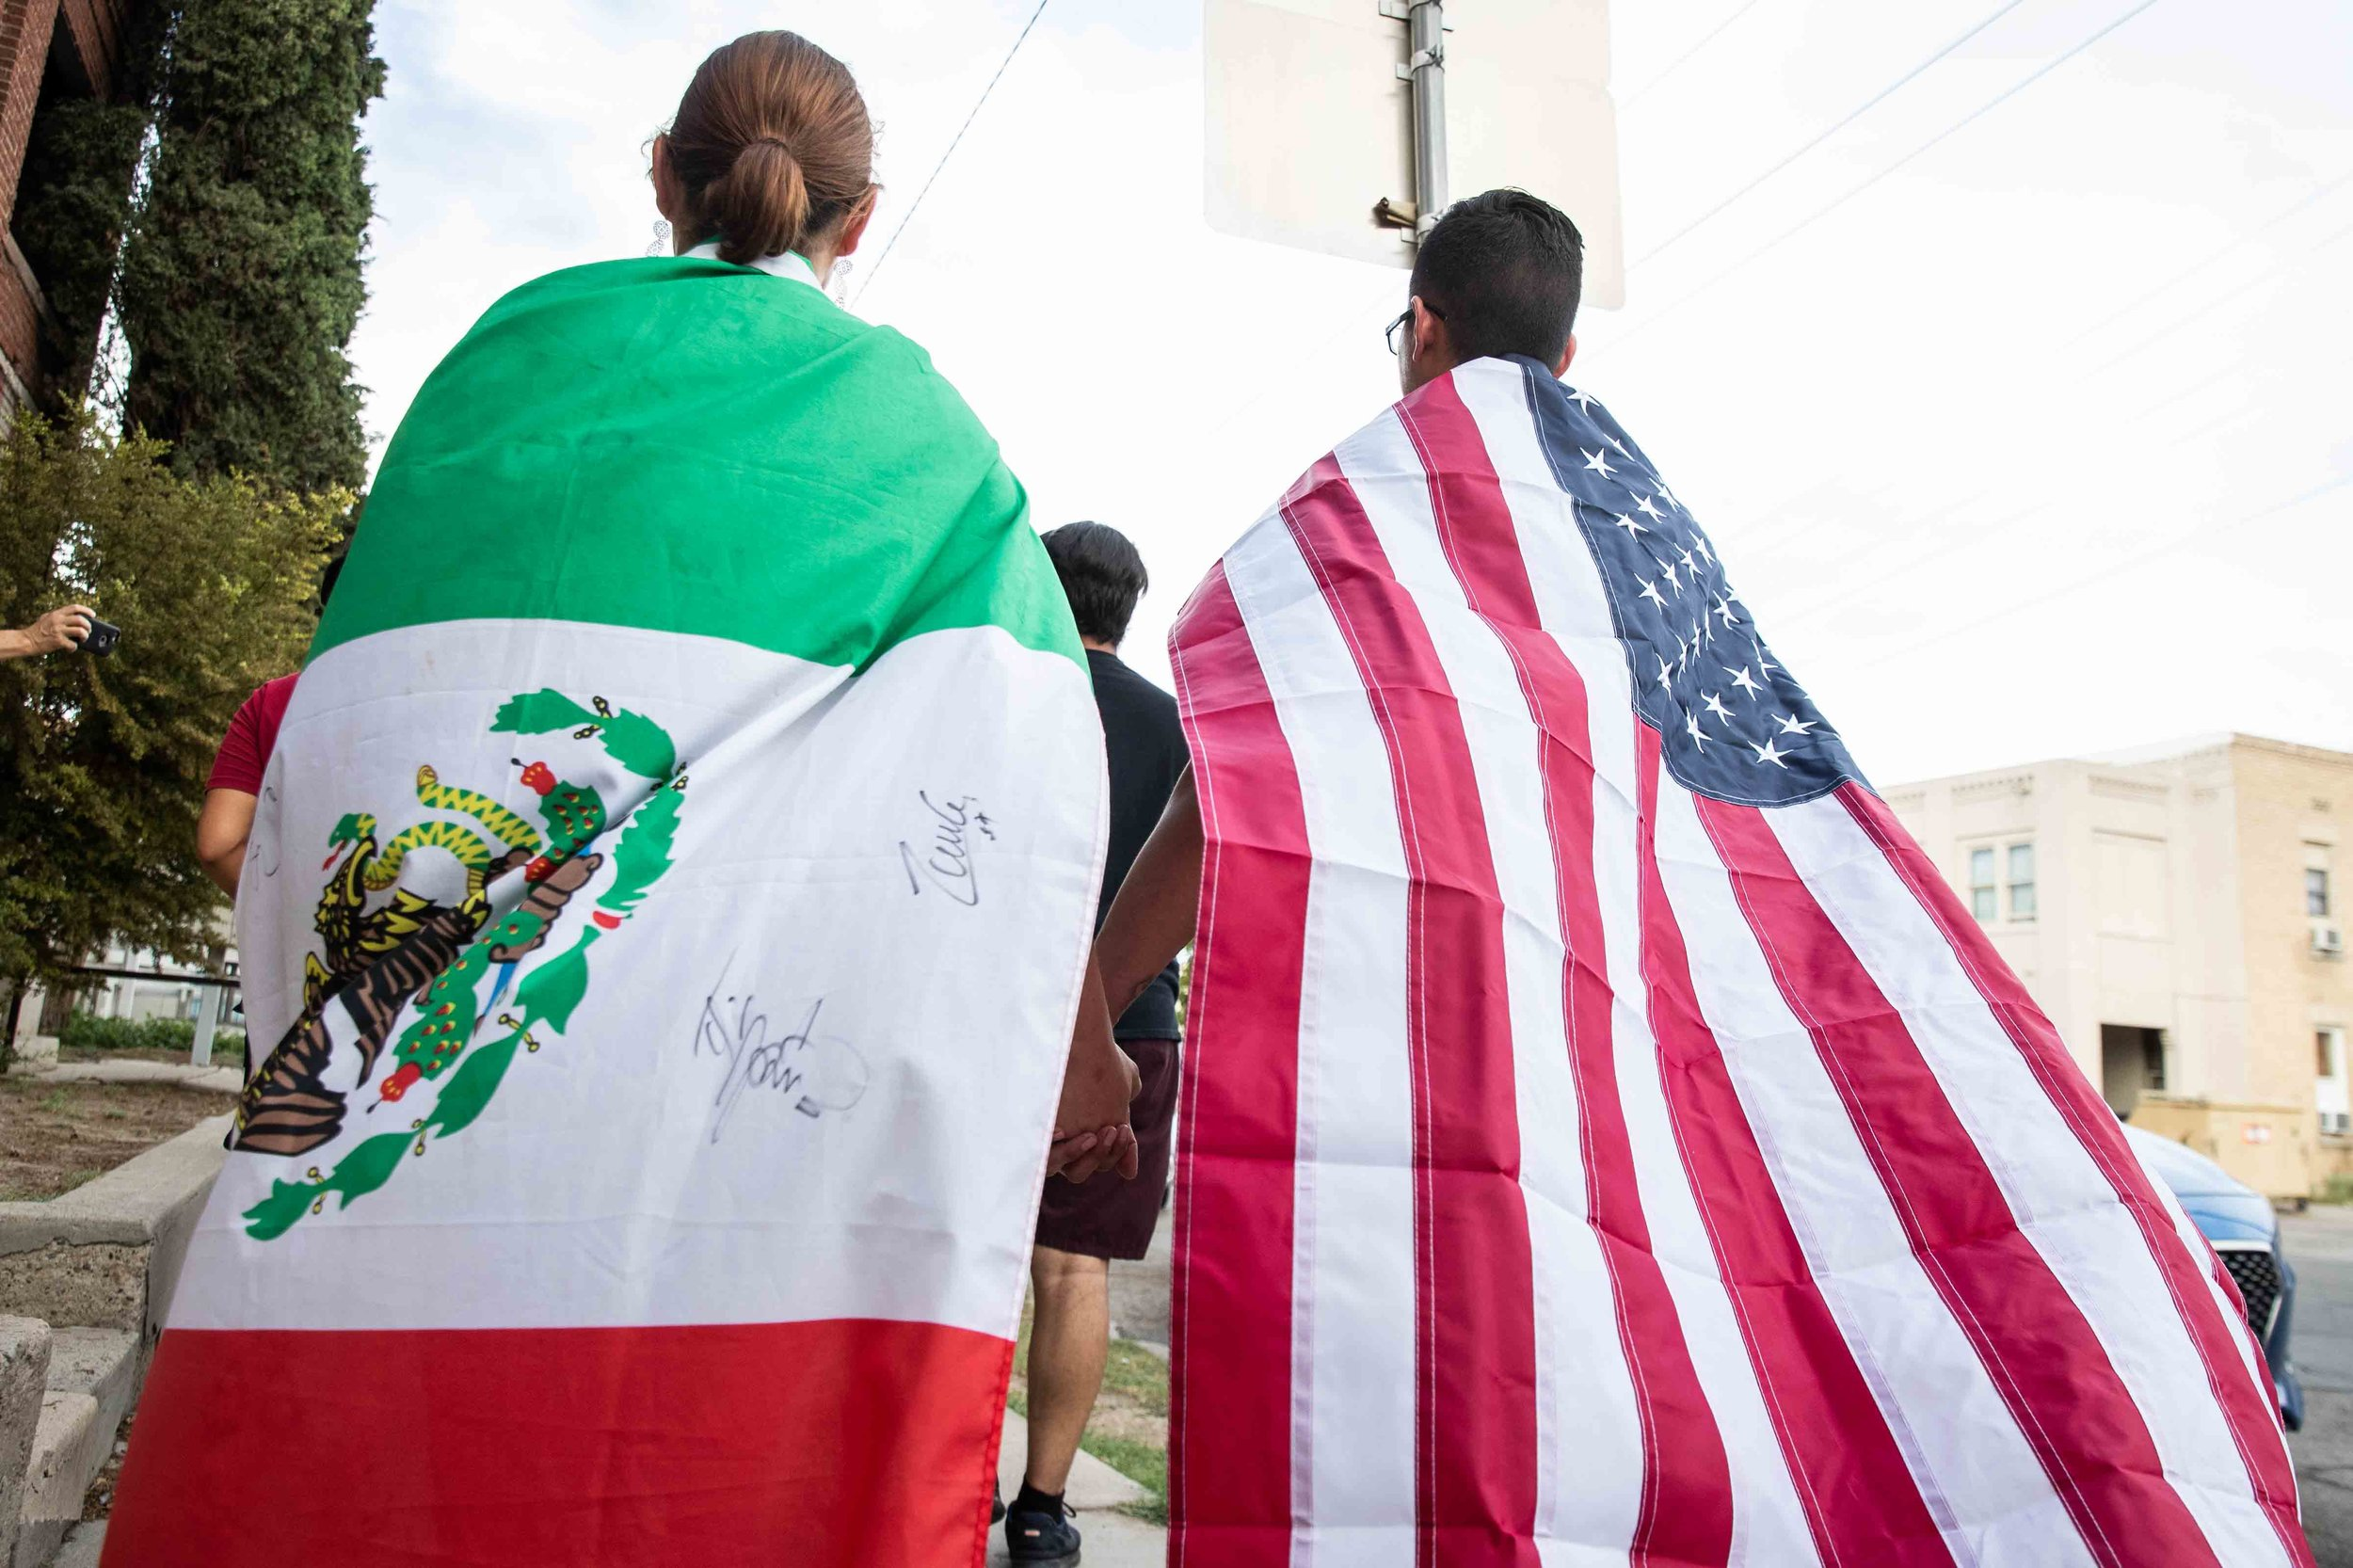 Samantha Ordaz (left) and Cesar Antonio Pacheco (right) carry the flags of Mexico and the United States as they walk holding hands during a silent march in honor to the victims of a mass shooting occurred in Walmart on Satuday morning in El Paso on Sunday, August 4, 2019.